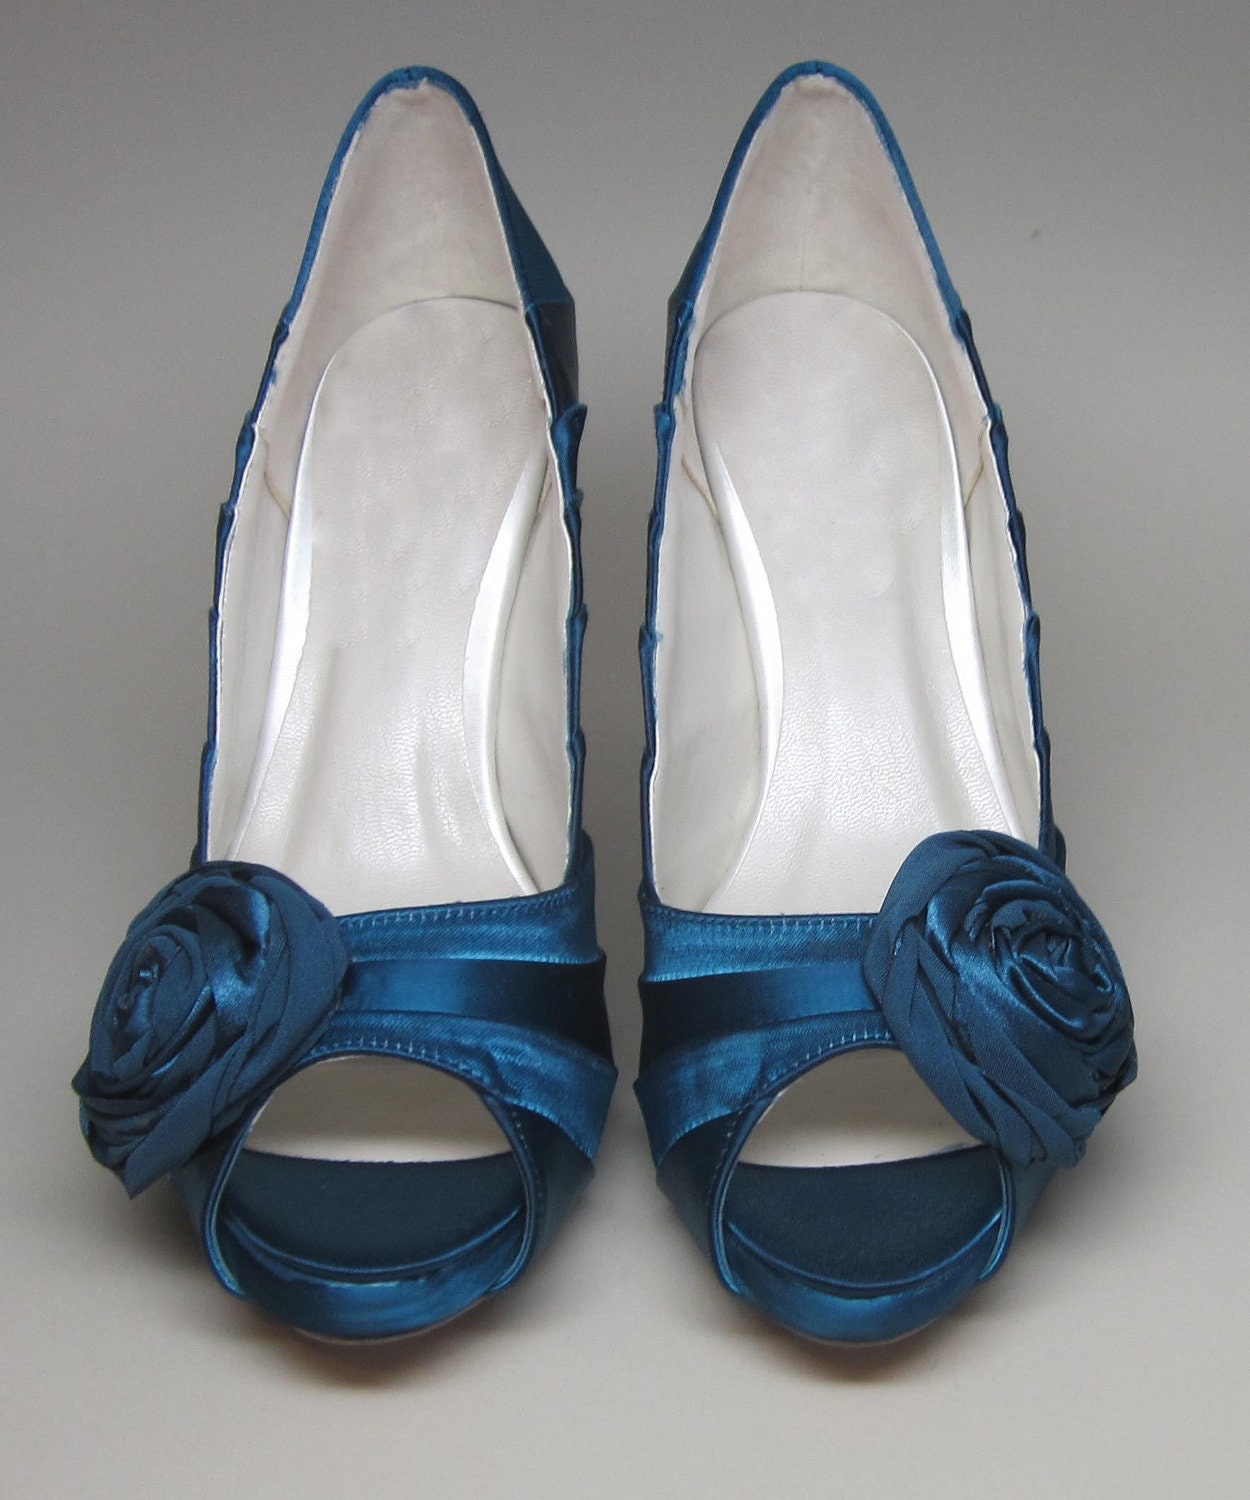 Items Similar To Blue Wedding Shoes Dark Turquoise Peeptoes With Matching Rosette Adornment